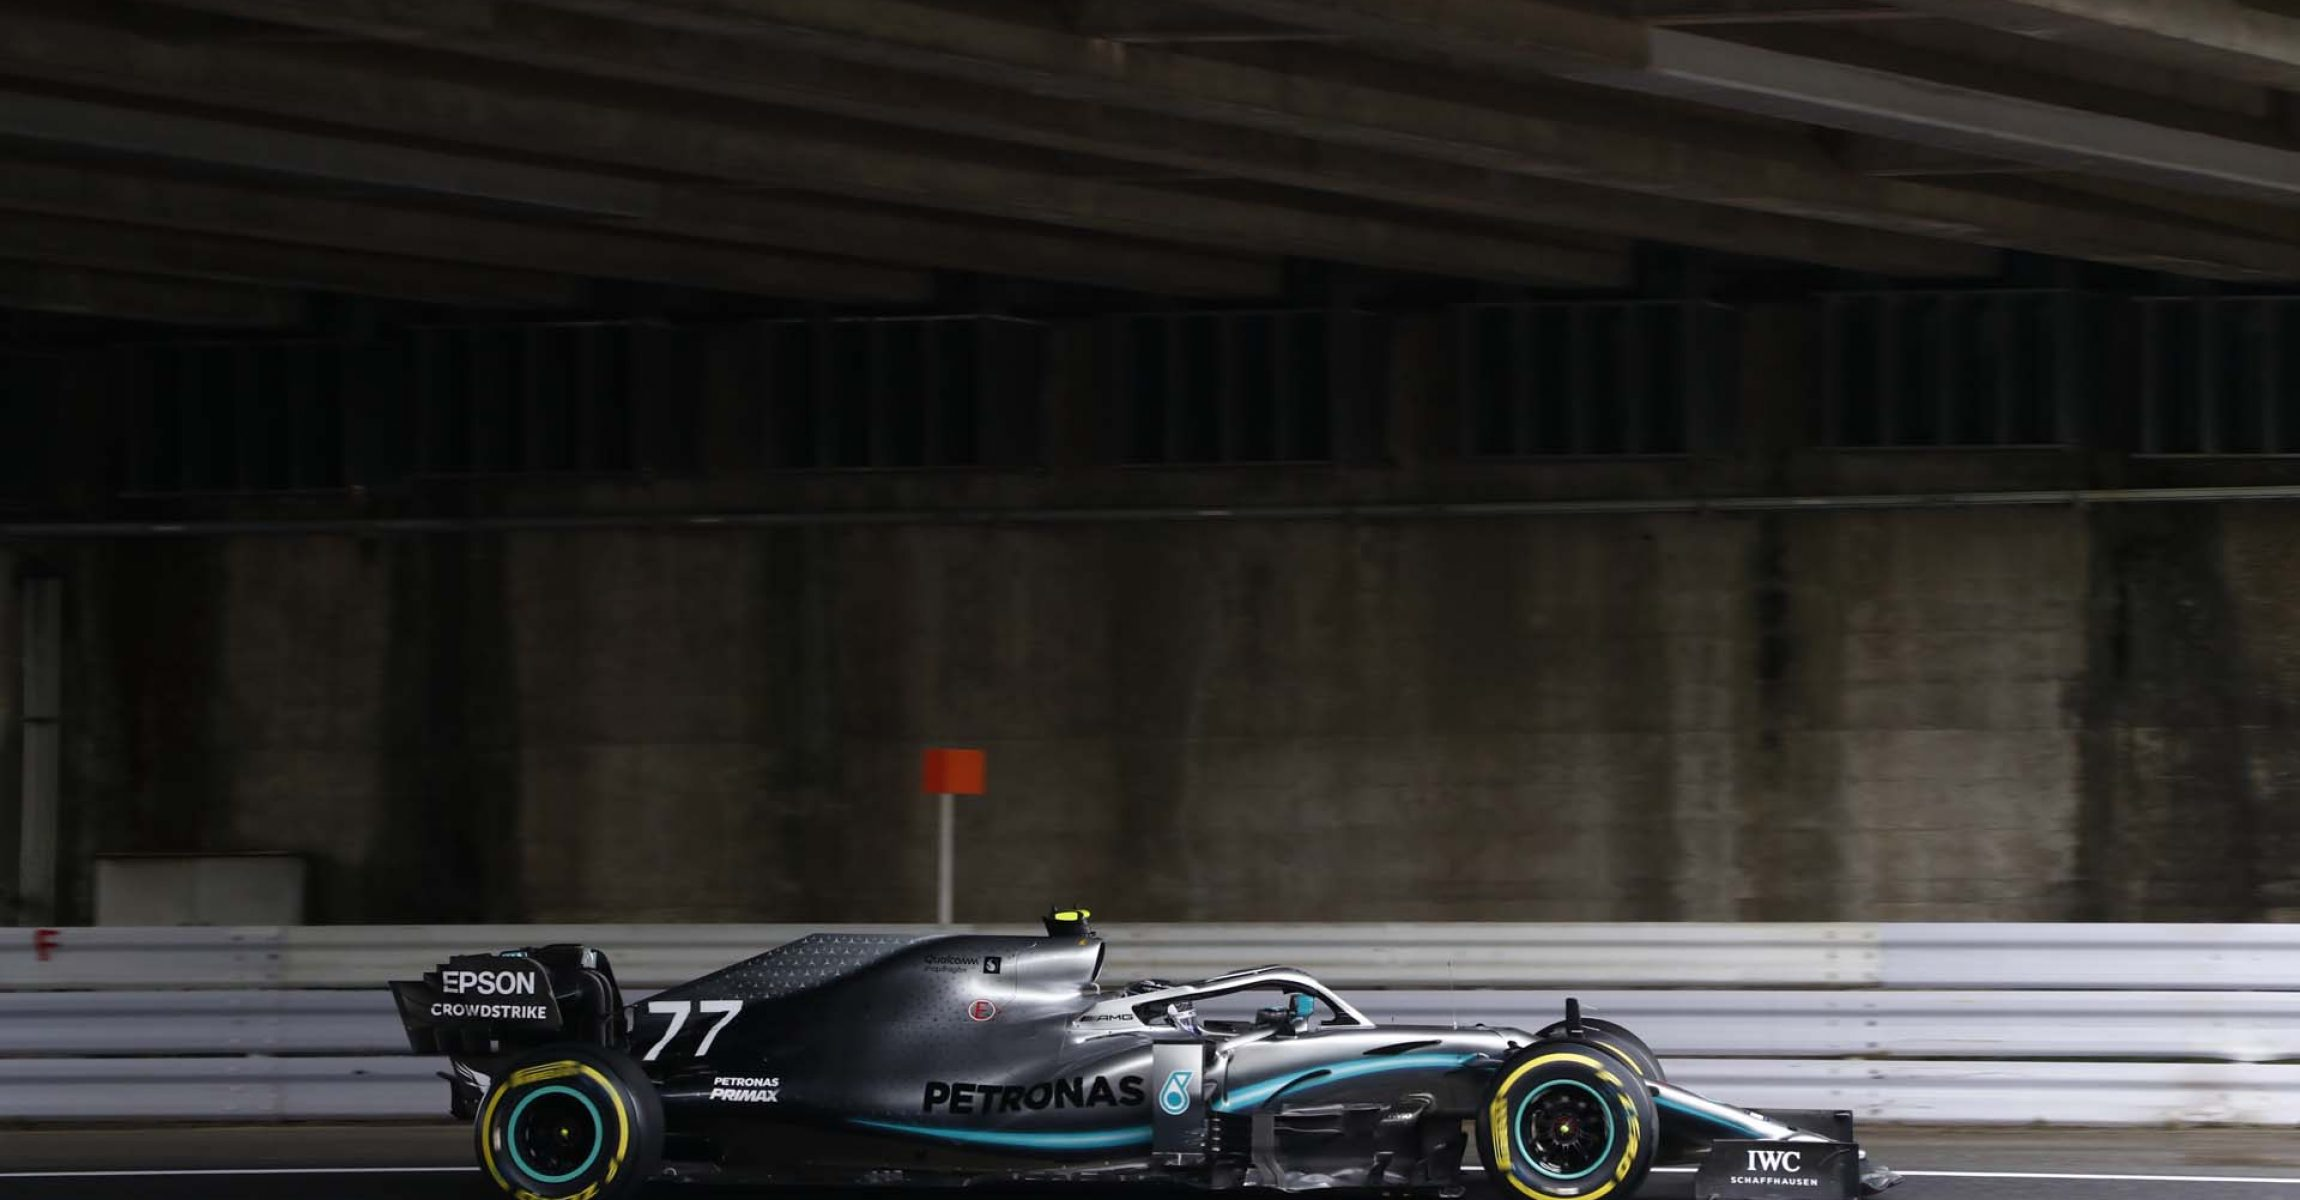 2019 Japanese Grand Prix, Friday - Wolfgang Wilhelm Valtteri Bottas Mercedes